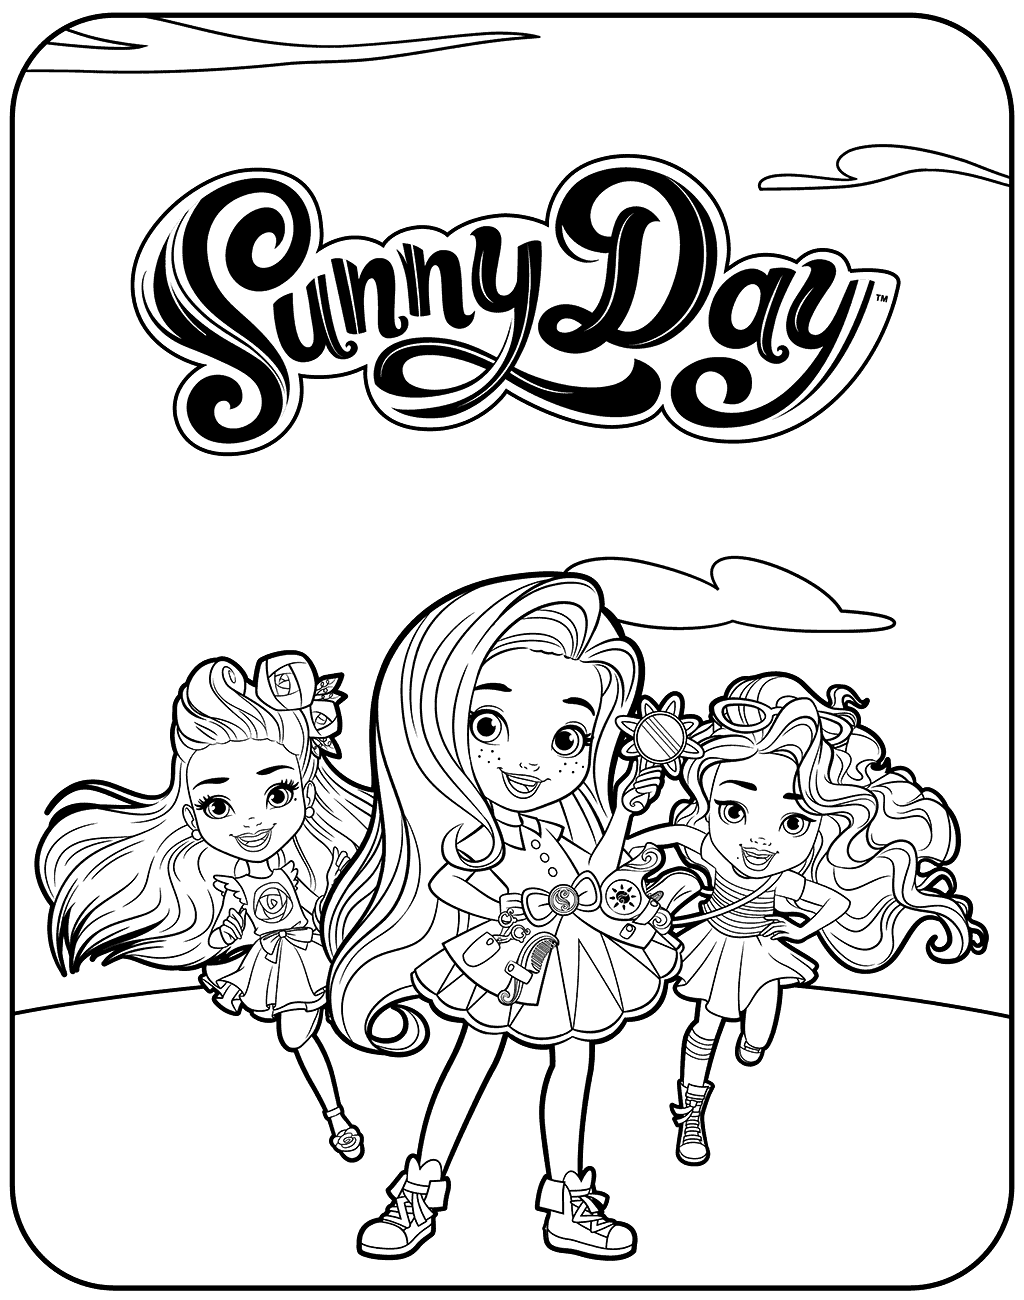 Nickelodeon Sunny Day Coloring Pages